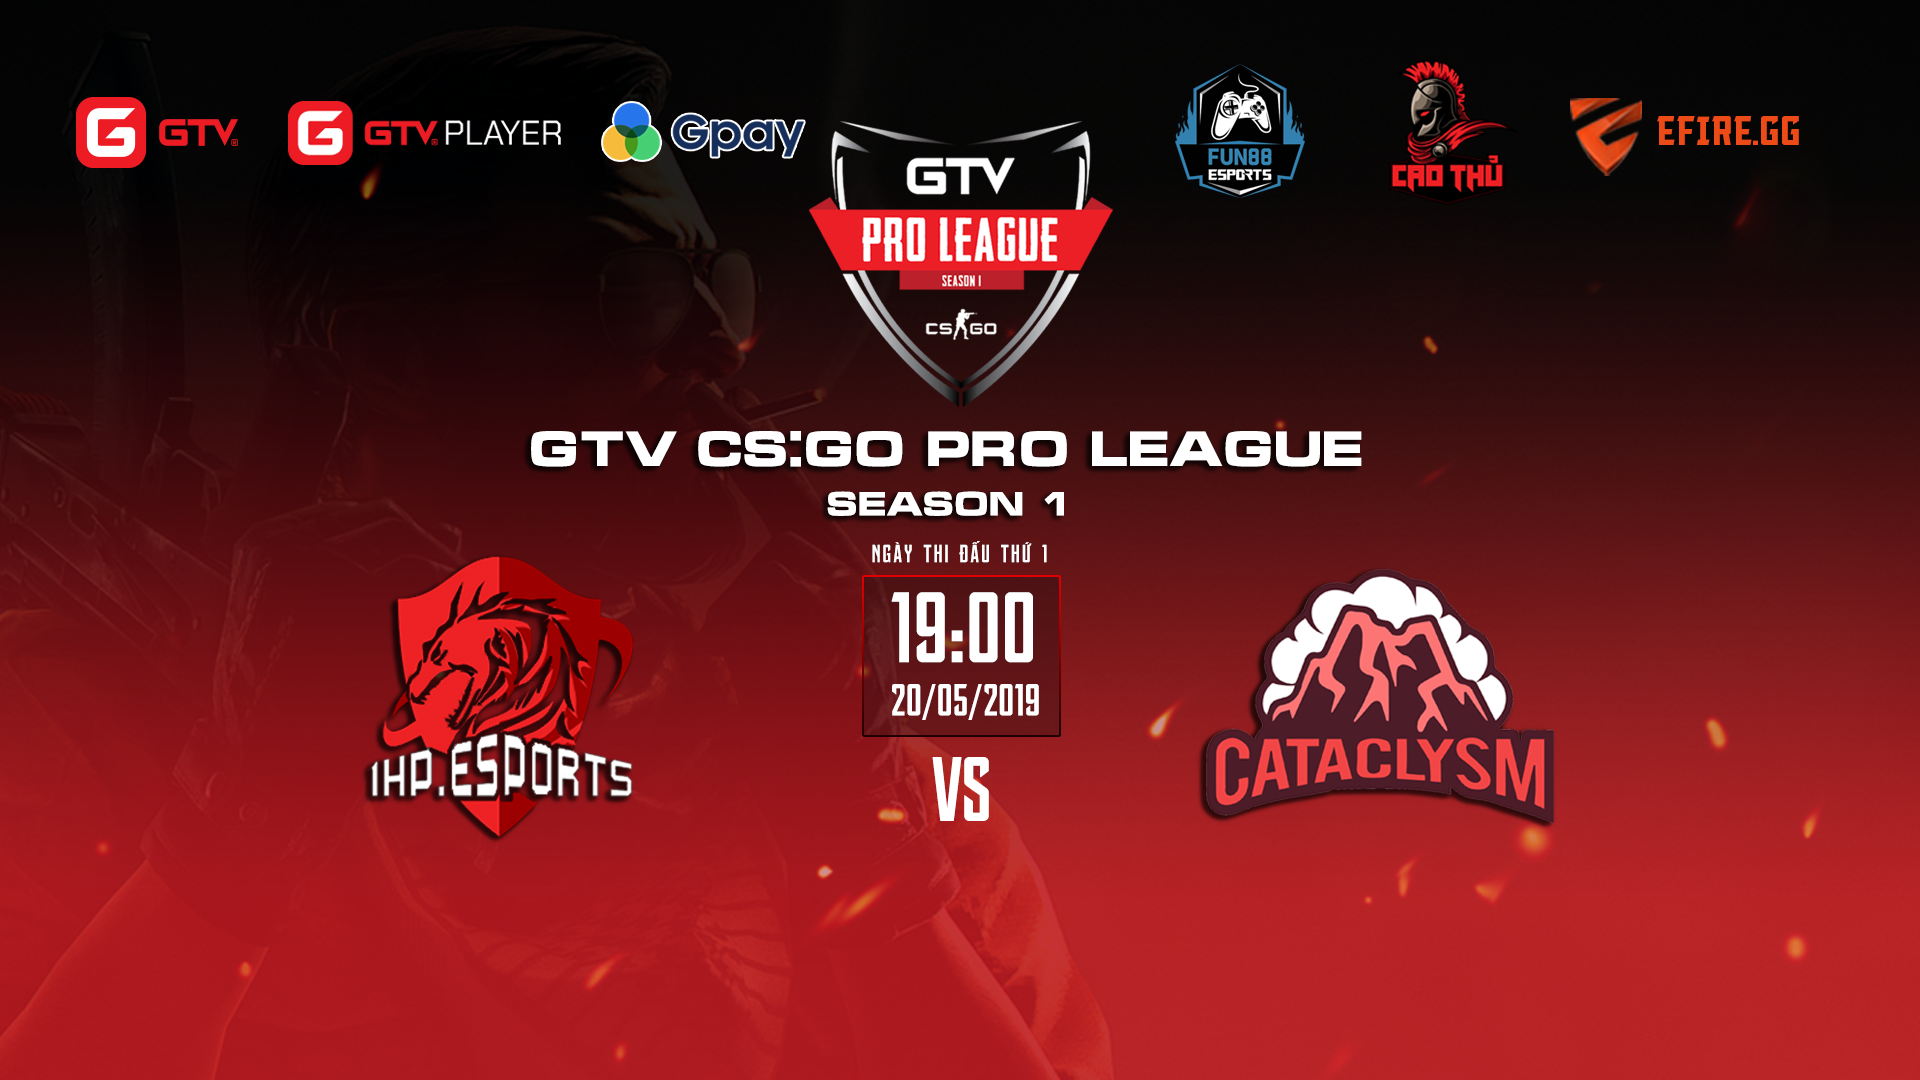 CS:GO] Mở màn GTV CS:GO Pro League Season 1: Cataclysm vs 1HP